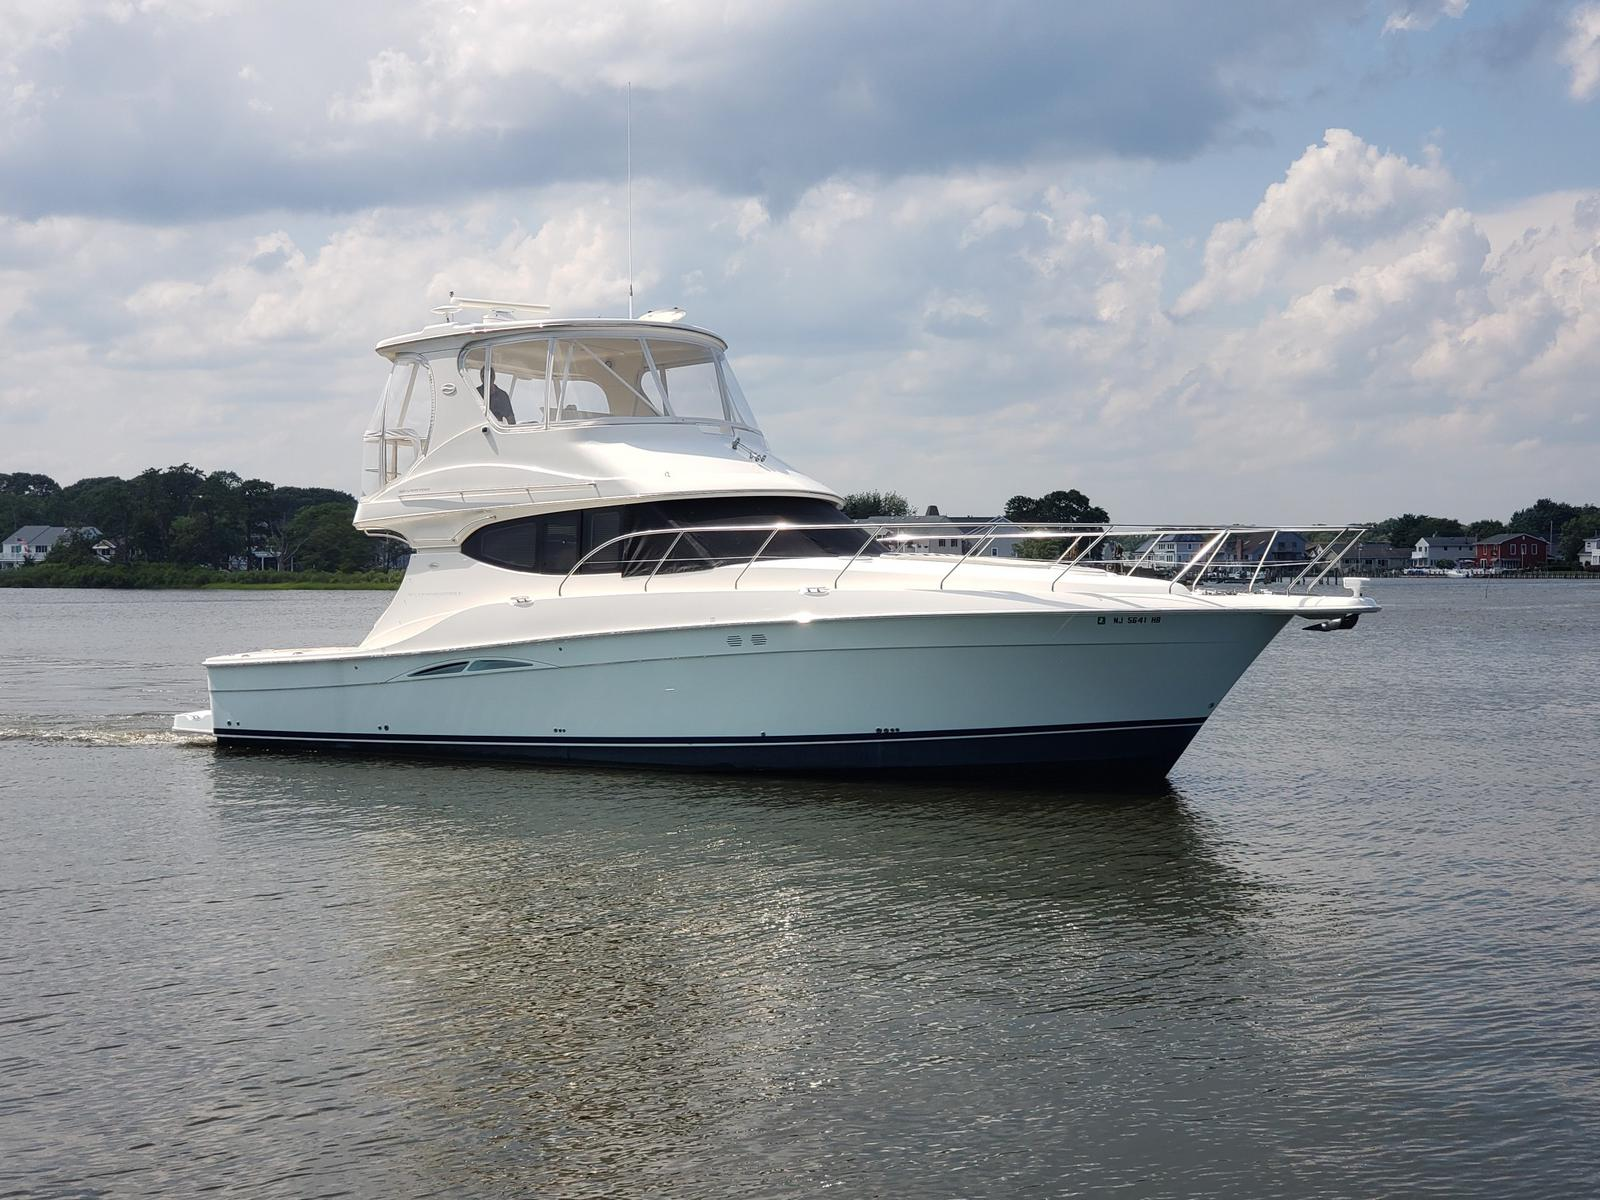 Silverton boats for sale in 07719 - Boat Trader